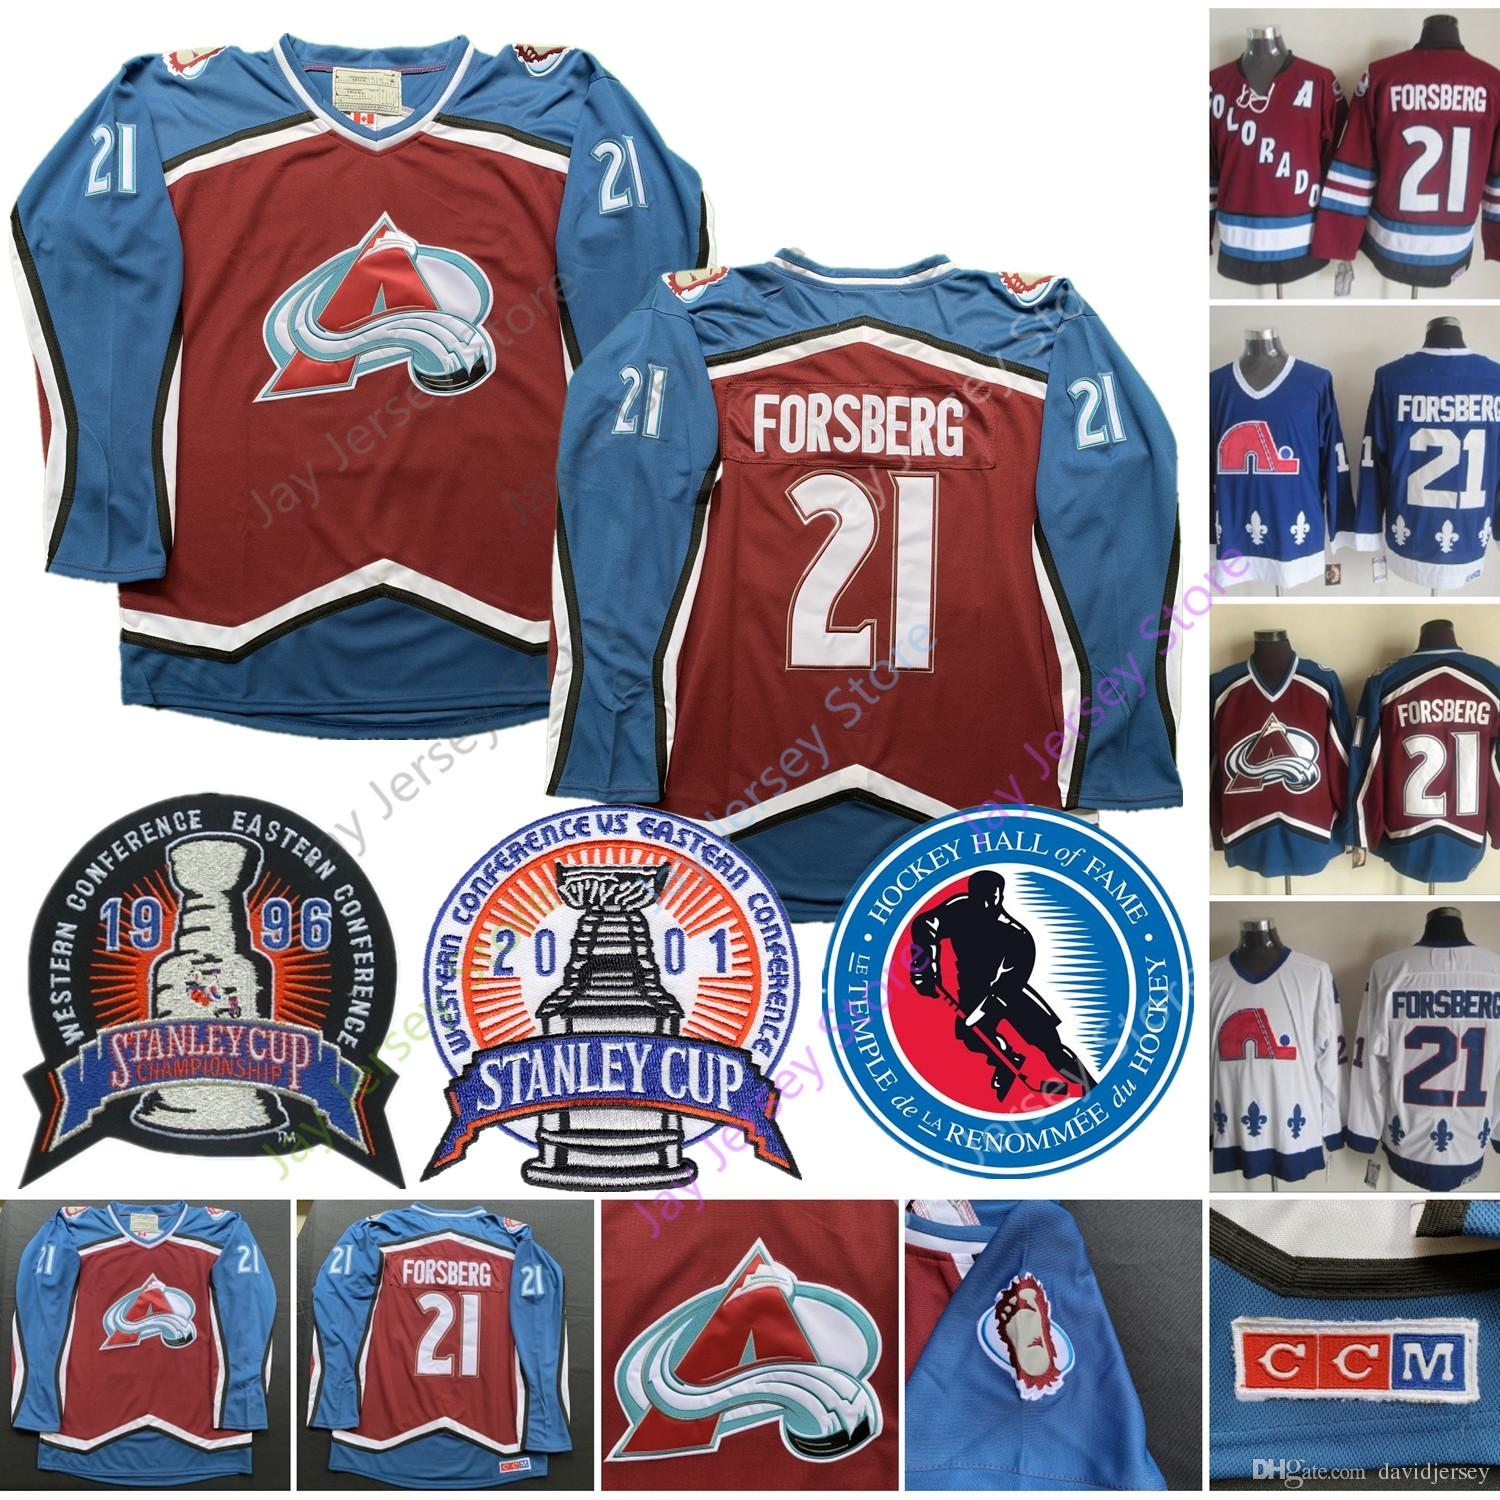 save off a5a3f 8fe2e Peter Forsberg Jersey 1996 2001 Stanley Cup 2014 Hall Of Fame HOF Colorado  Avalanche Quebec Nordiques Ice Hockey Jerseys